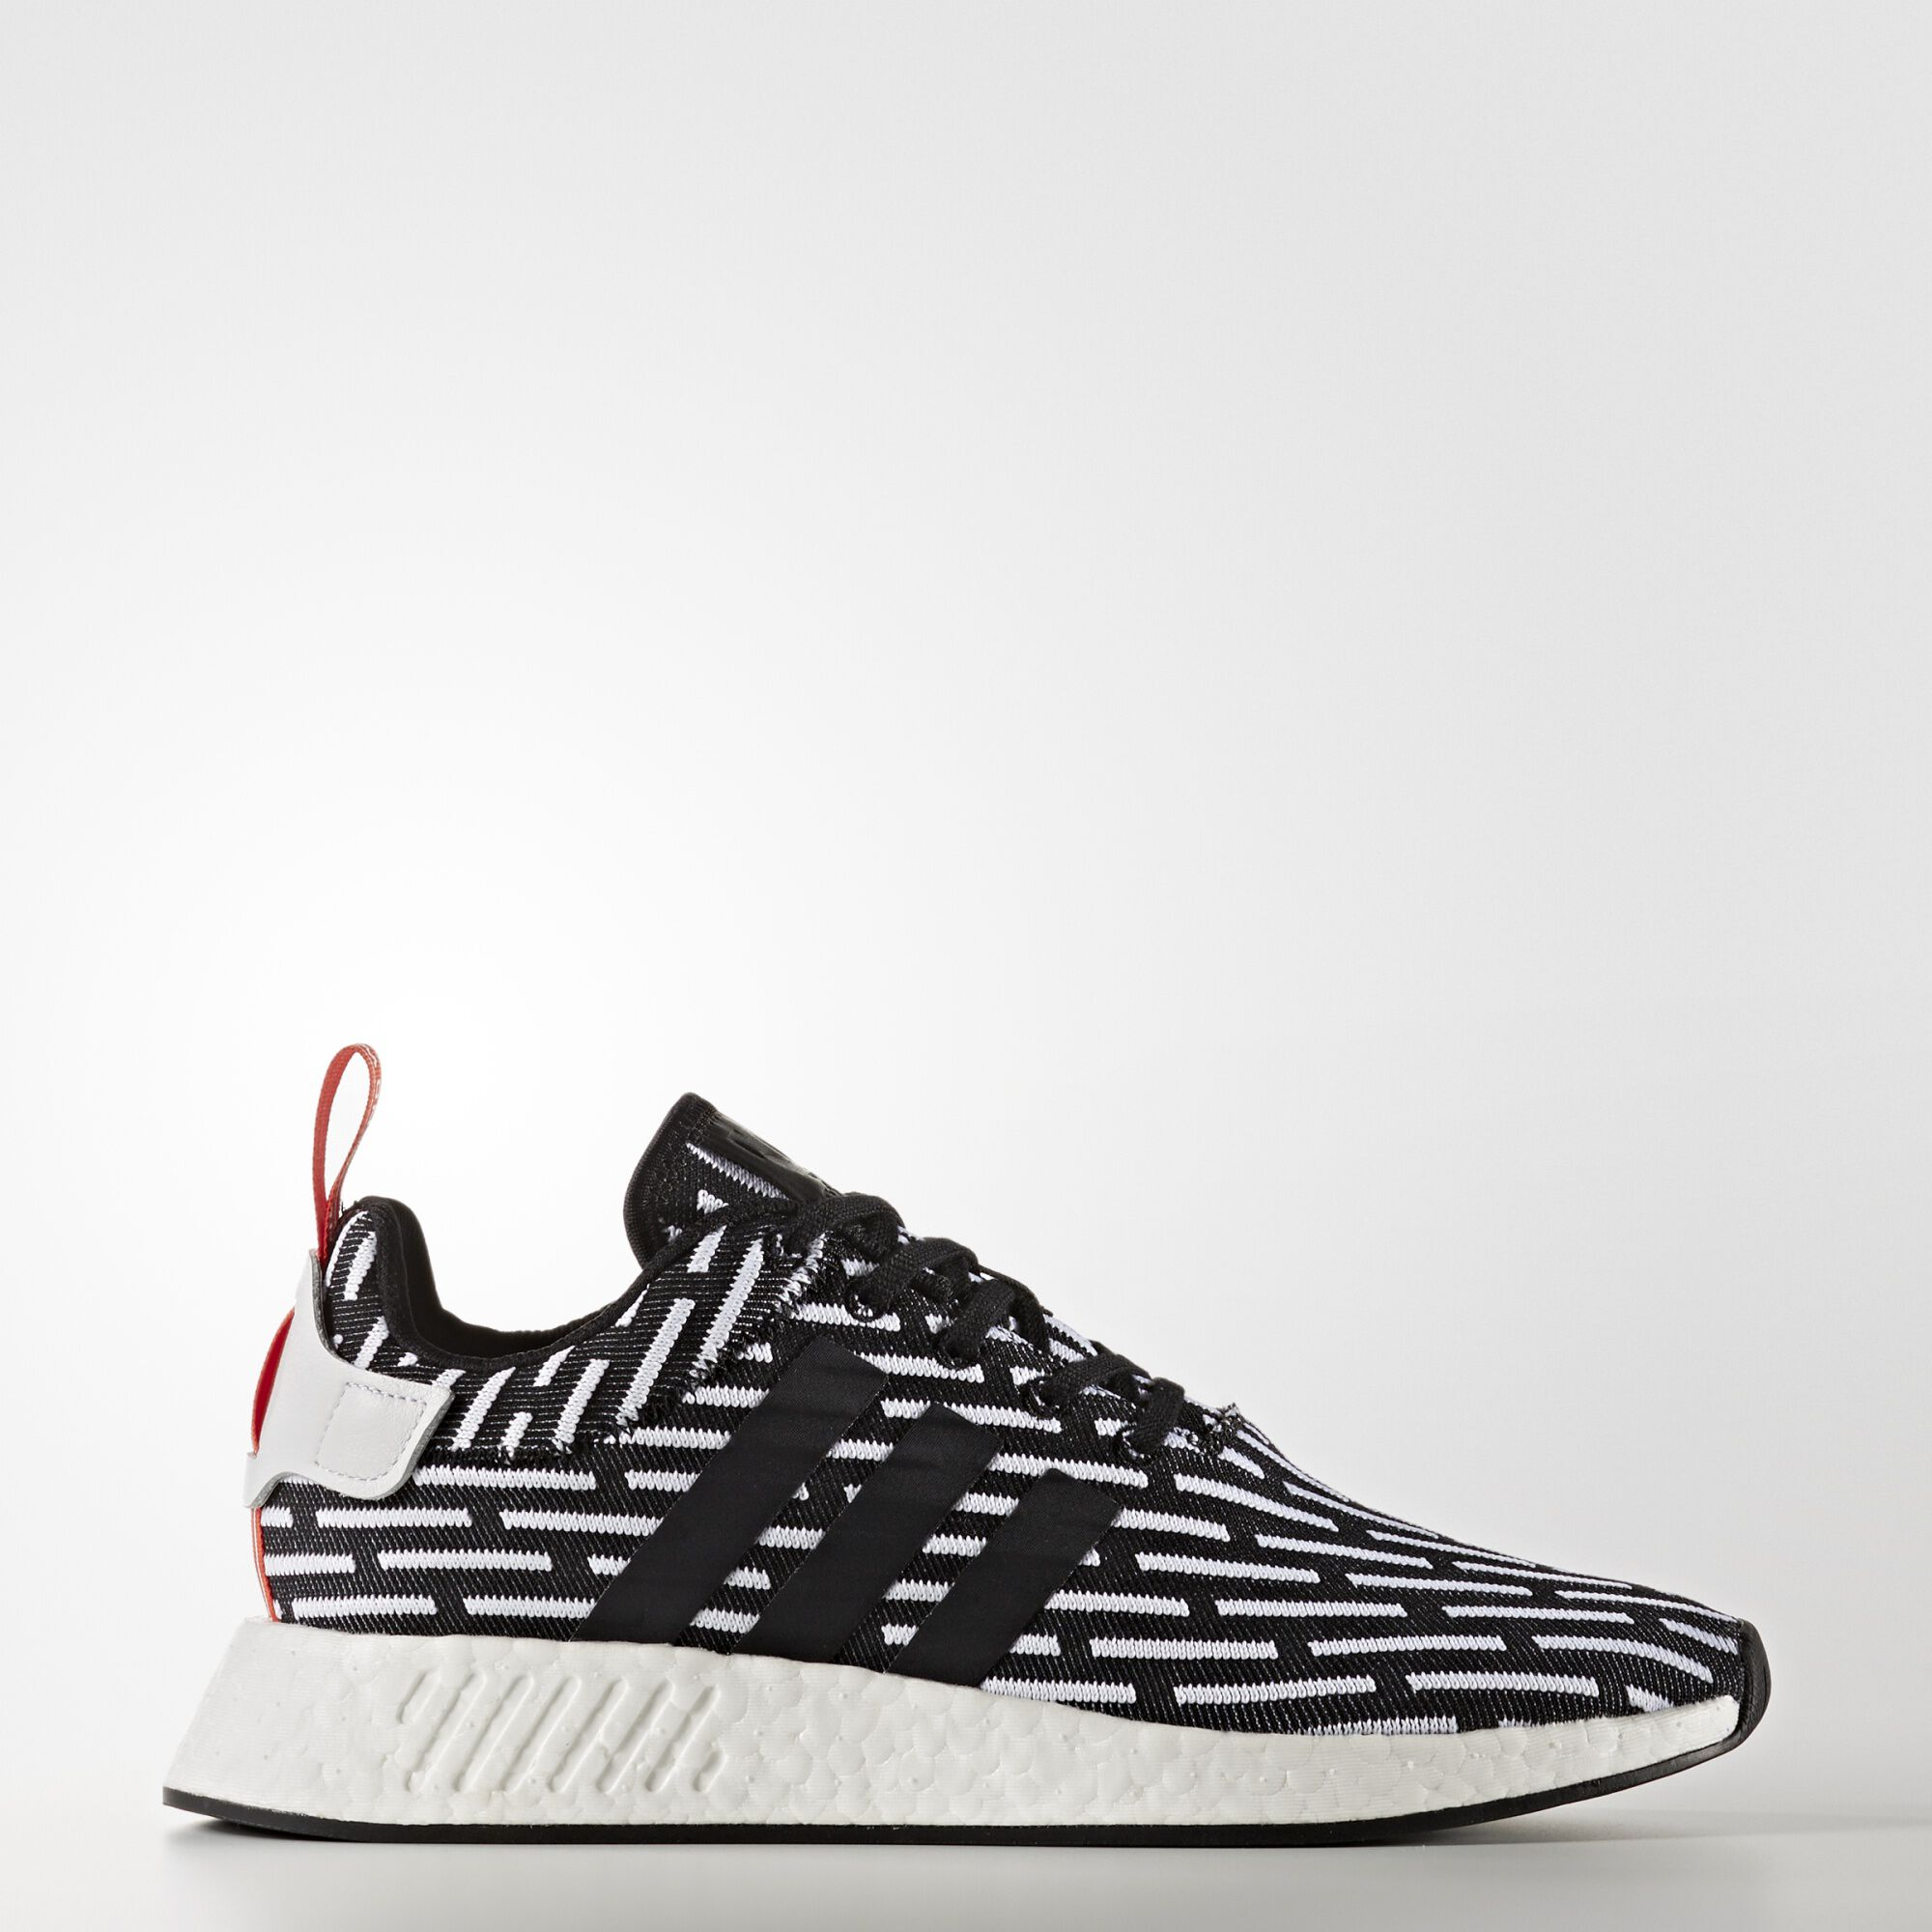 Adidas Nmd R1 White Womens